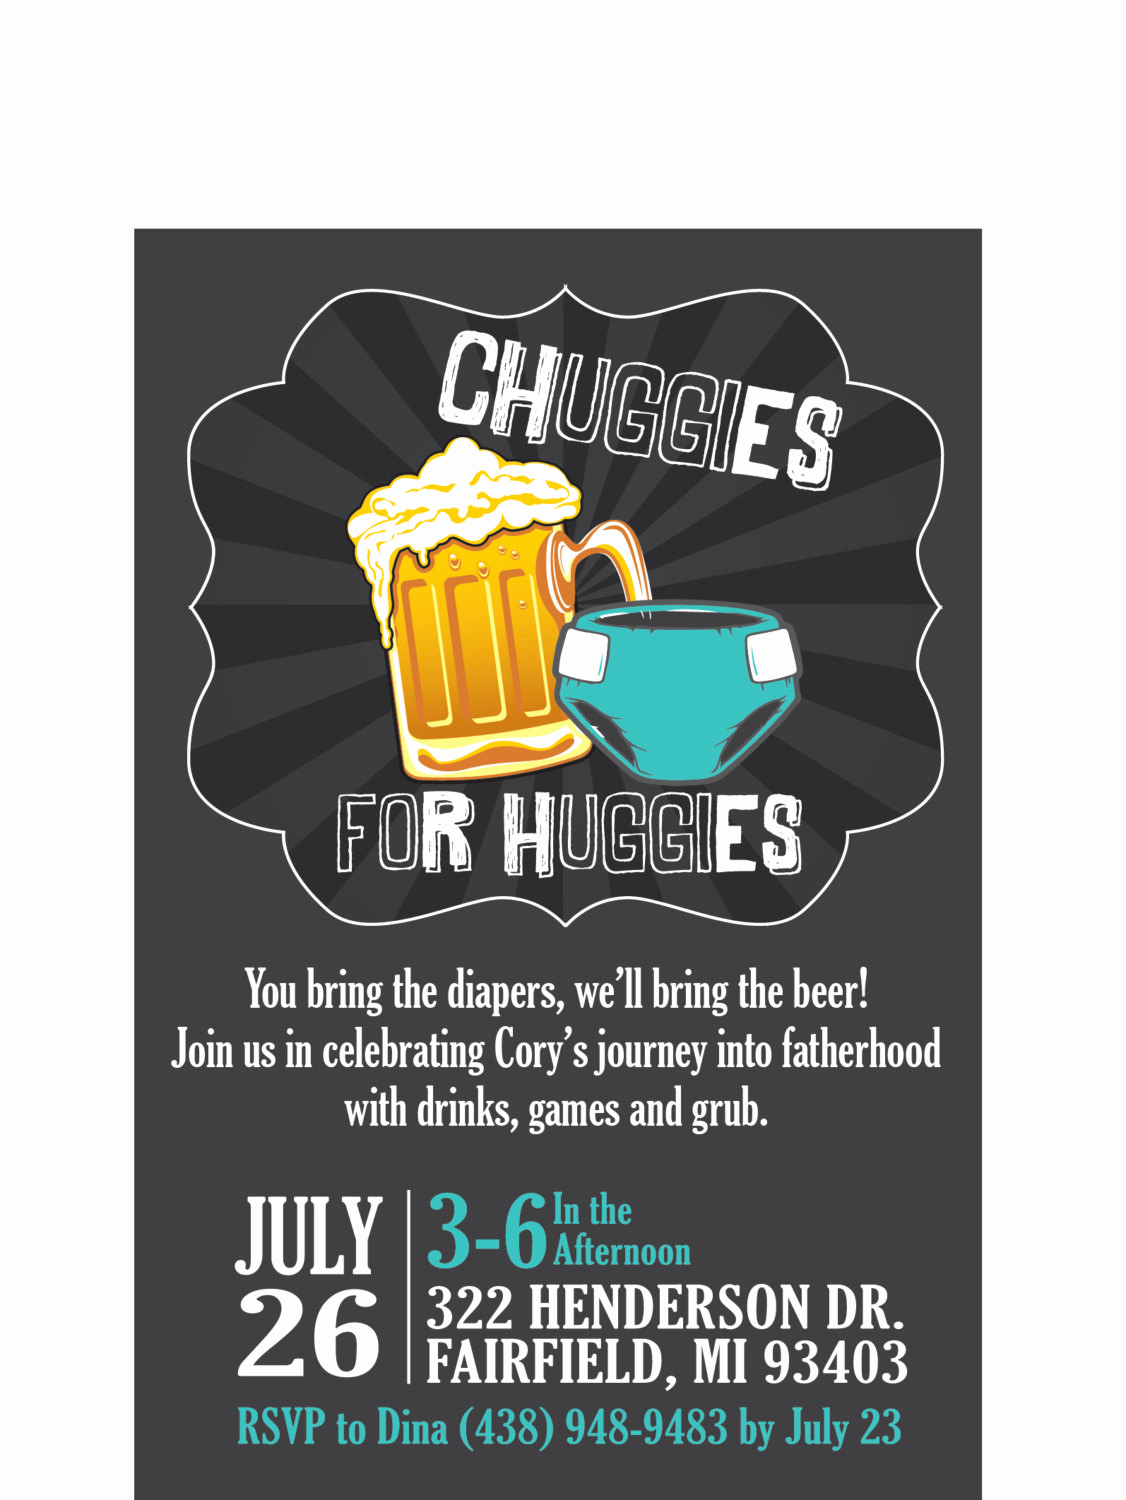 Huggies and Chuggies Invitation Best Of Chuggies for Huggies Customizable Diaper Party Invitation